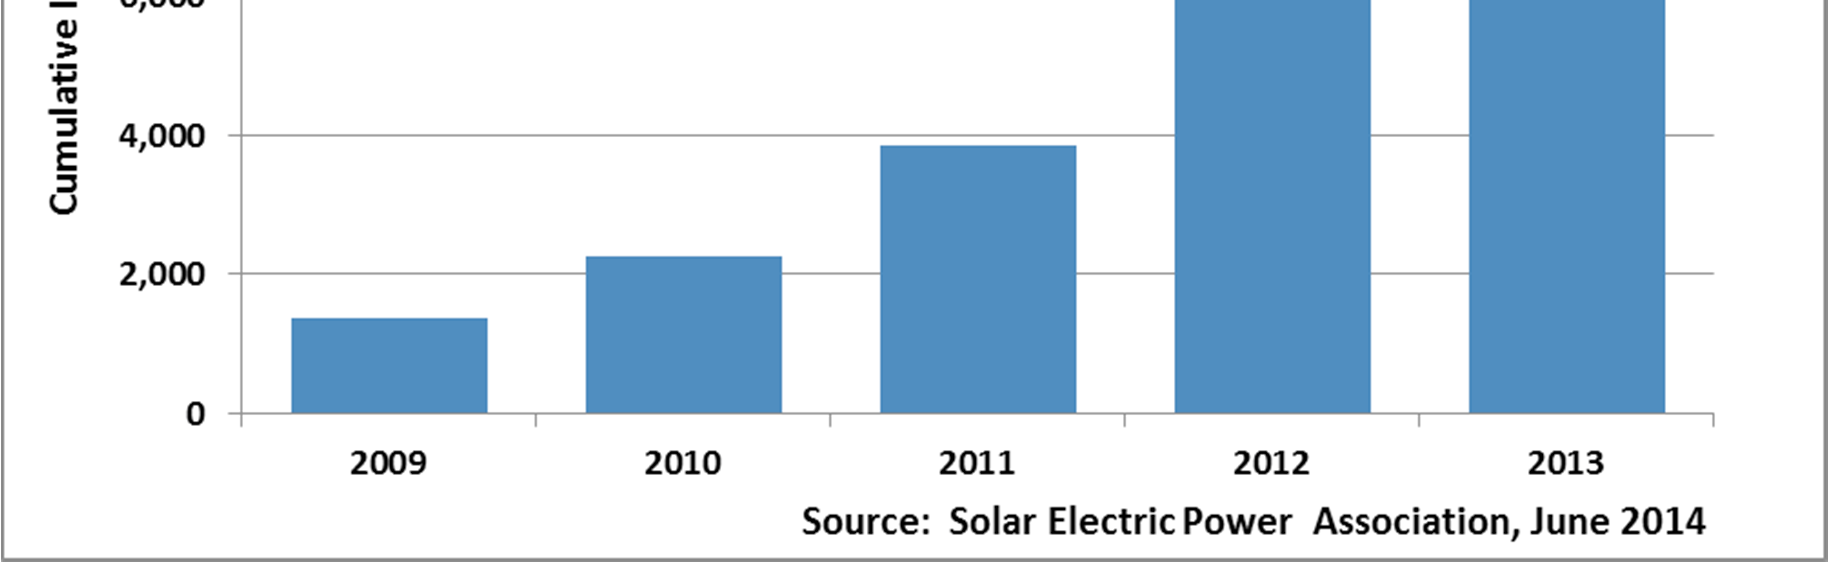 Photovoltaics. Figure 32 shows 34% of respondents explicitly include photovoltaics in their forecasting process.